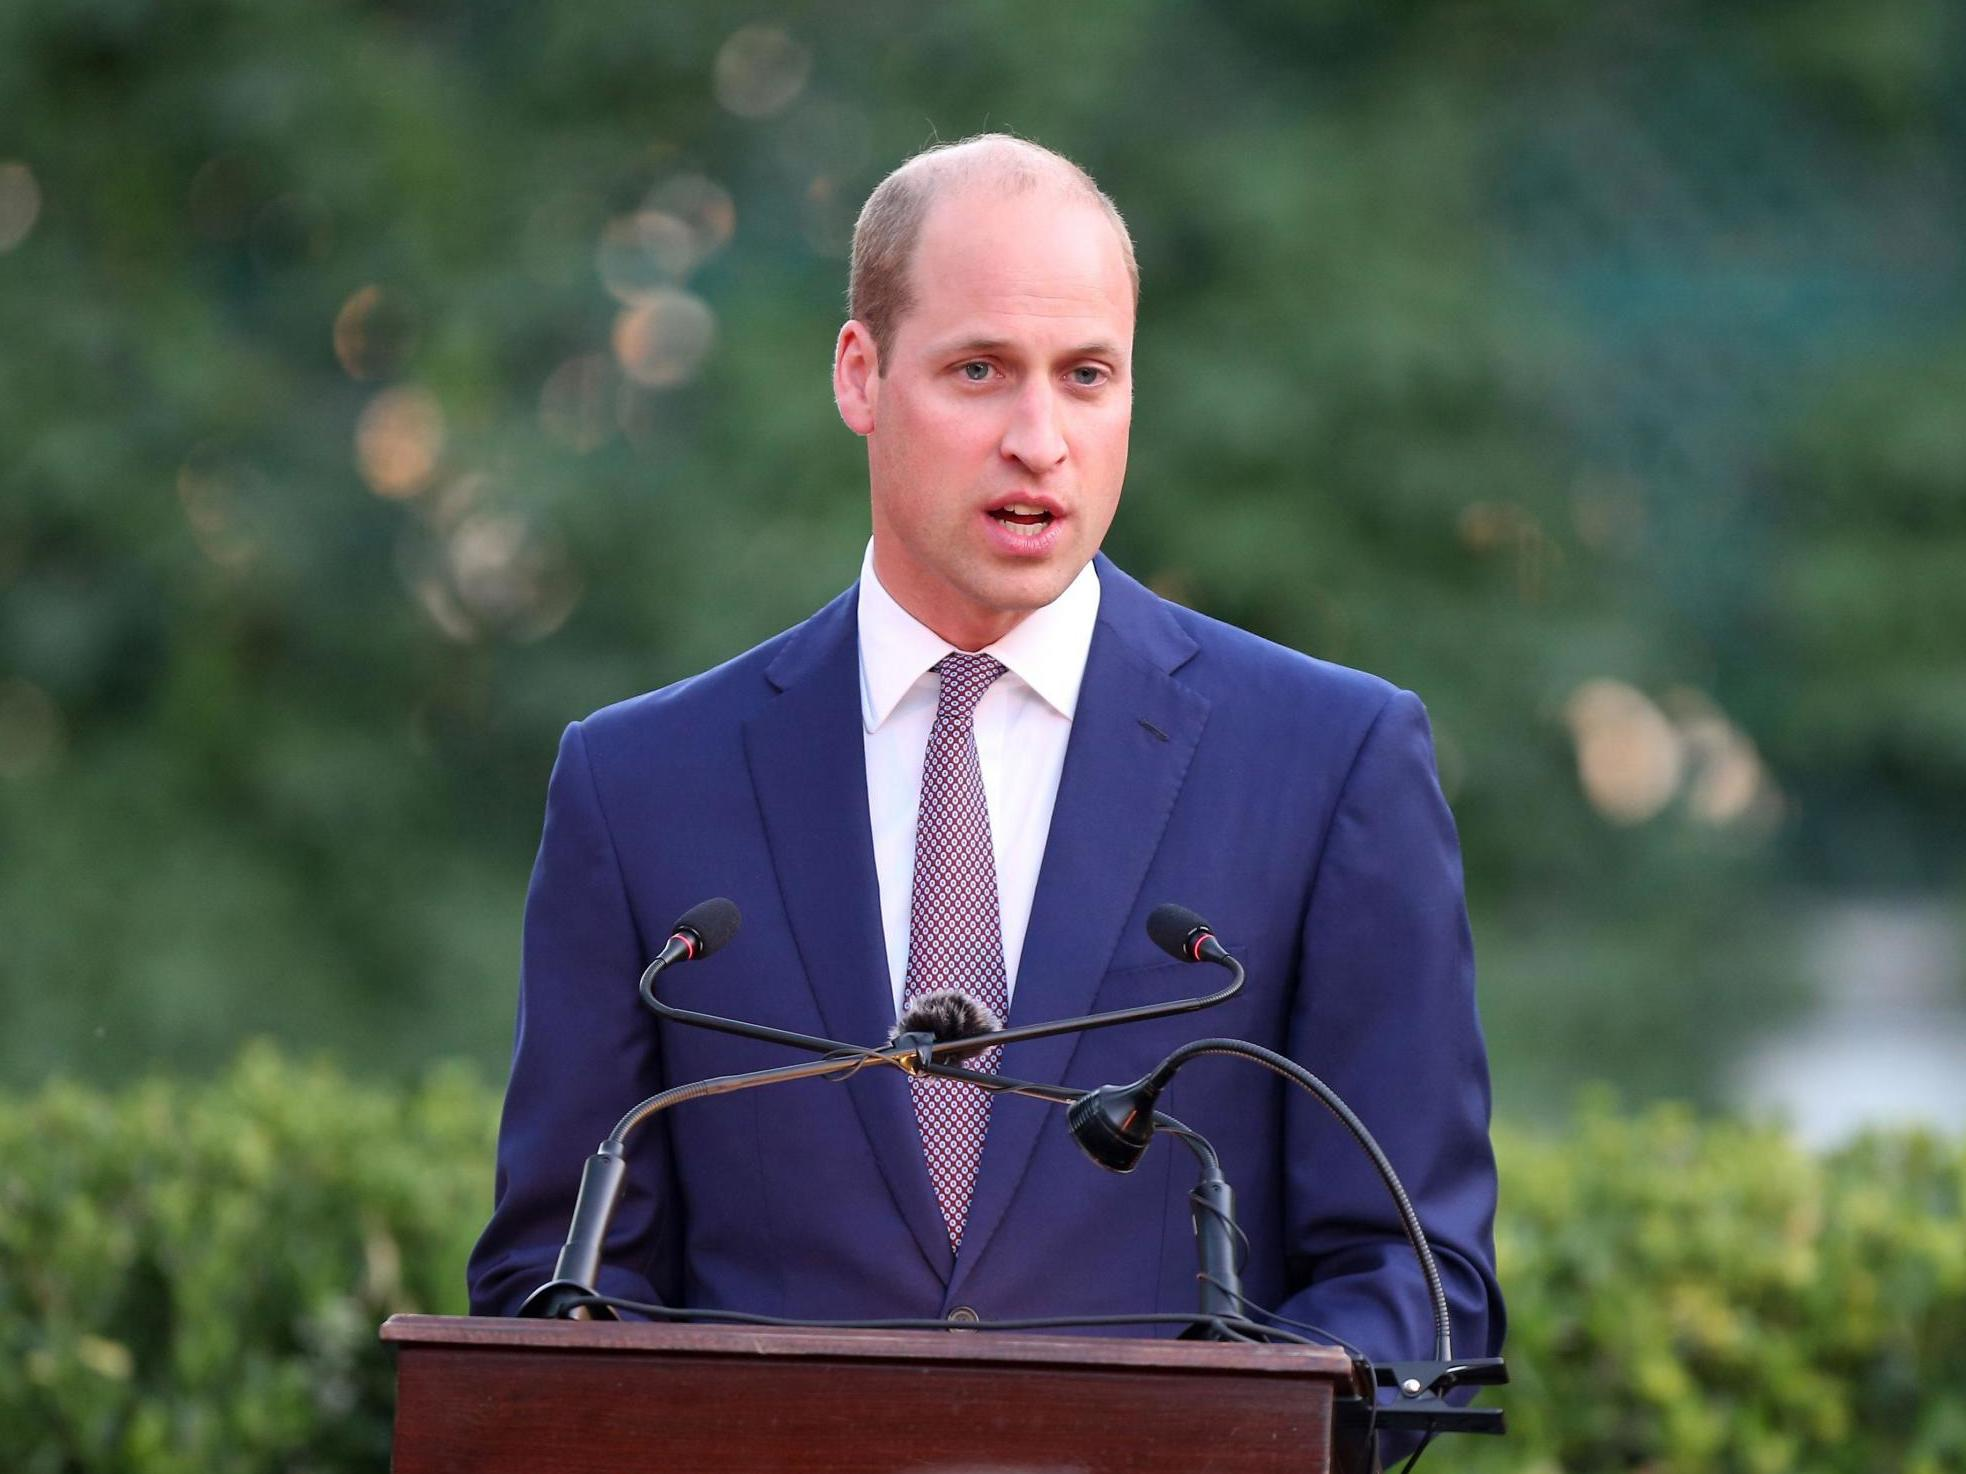 Prince William says poor eyesight helped him overcome anxiety when giving speeches